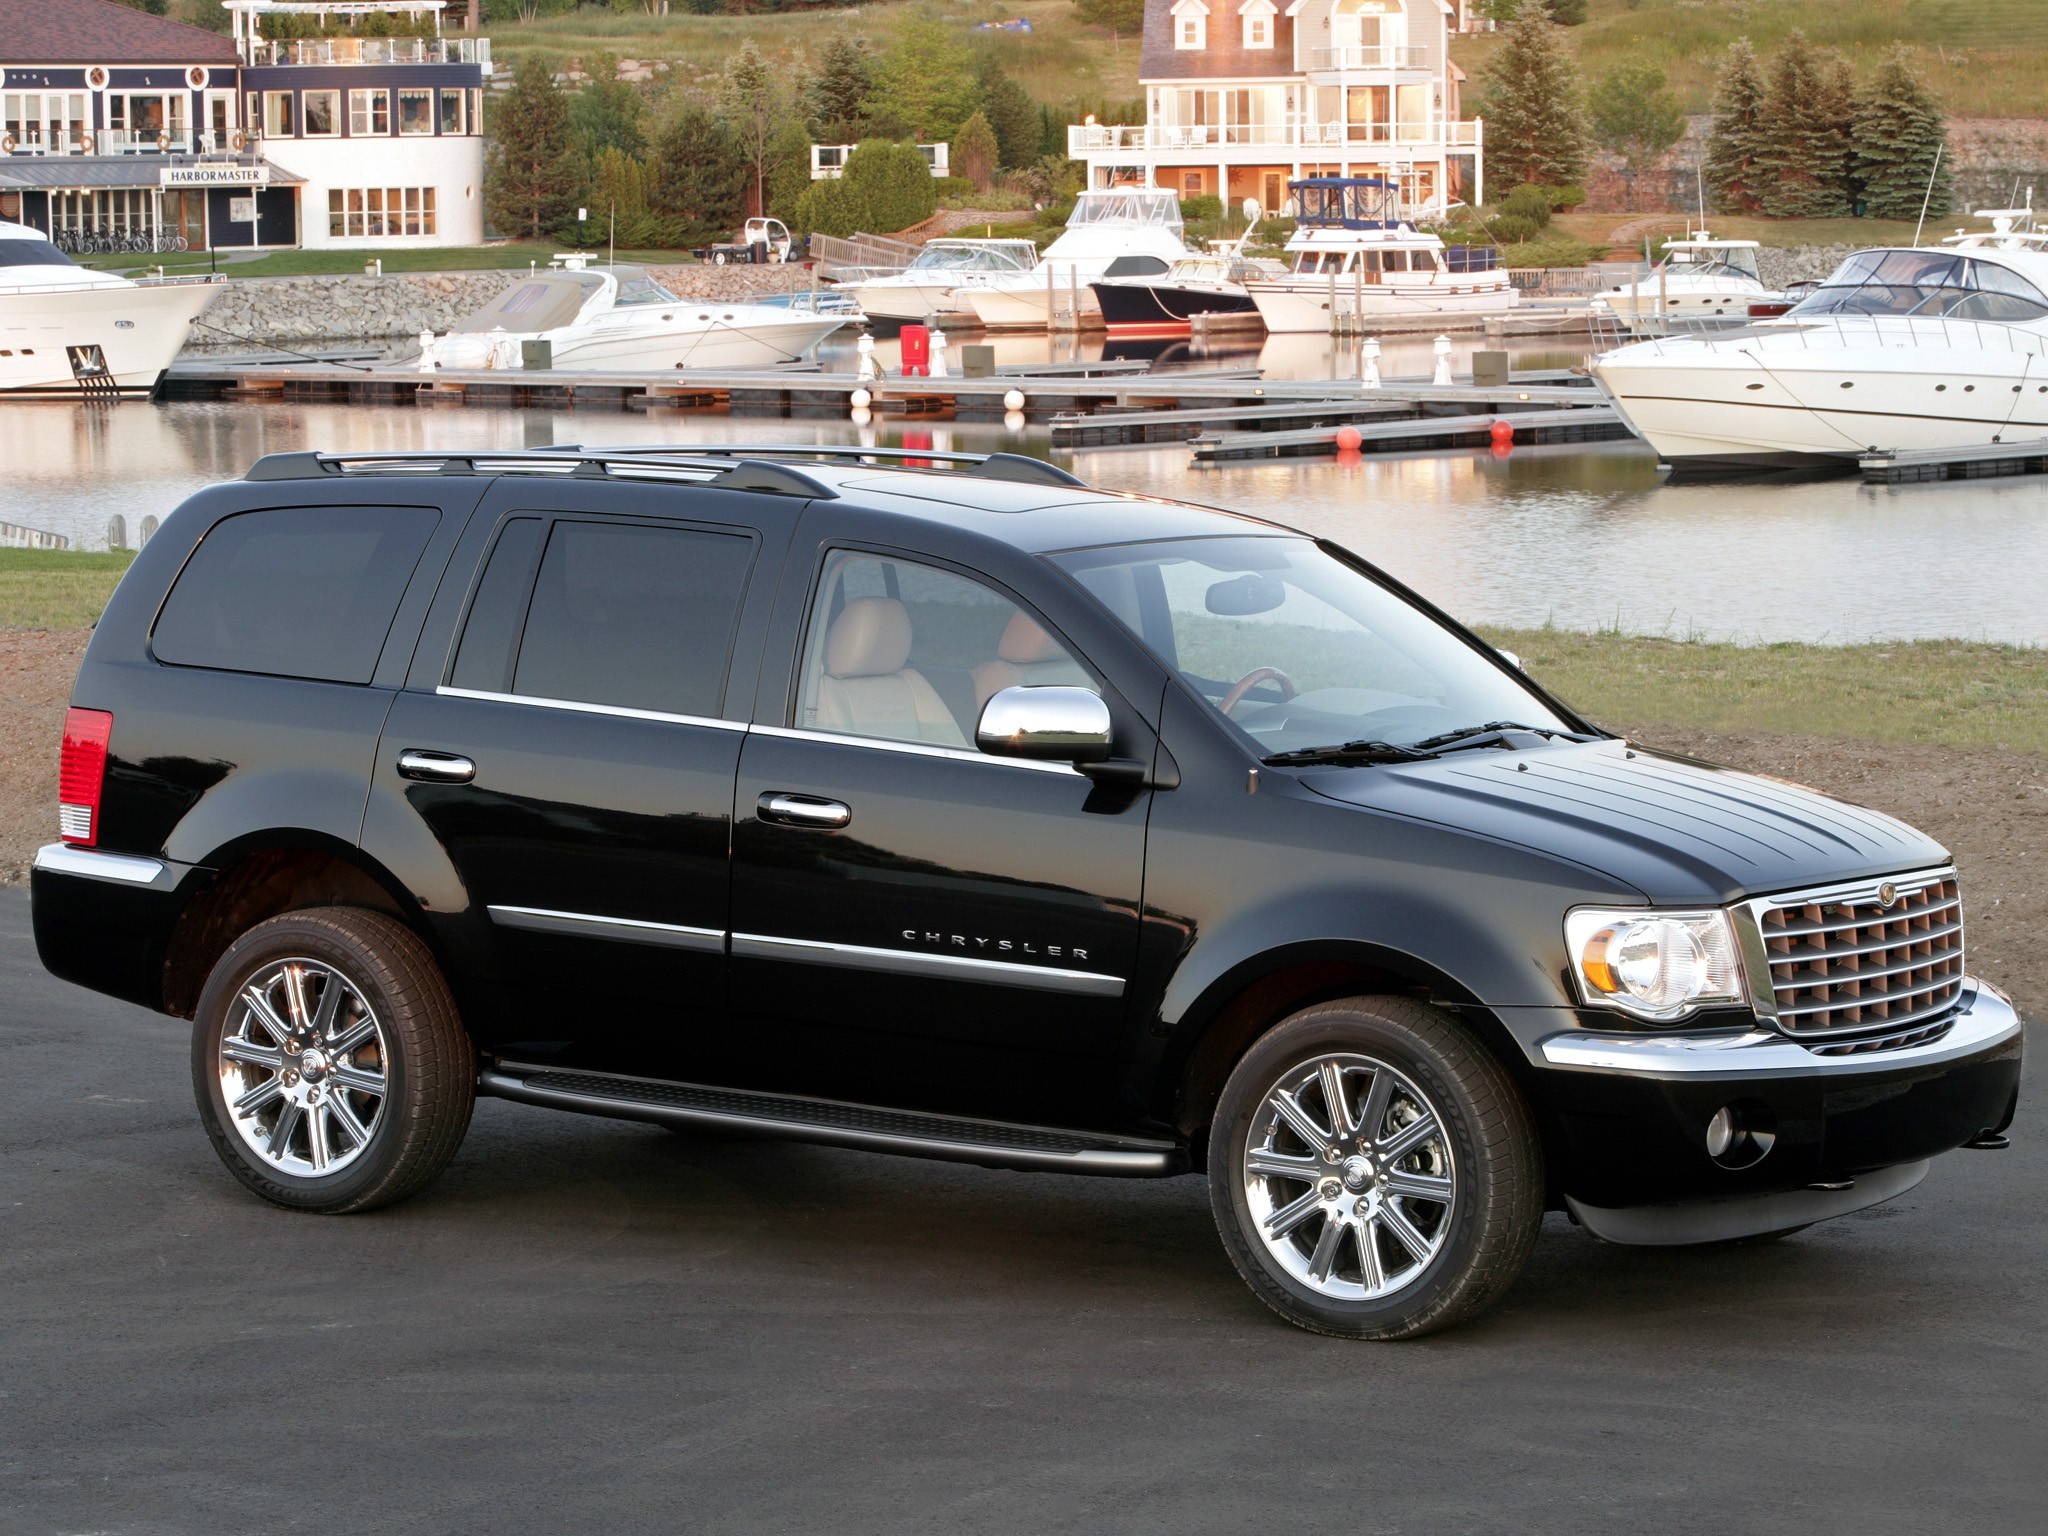 Cnpca Vi in addition G Gmc Envoy likewise Rnpca Vi moreover D Does Anyone Have Pics Lifted Gen D Thx Ndregrango as well . on 2006 dodge durango